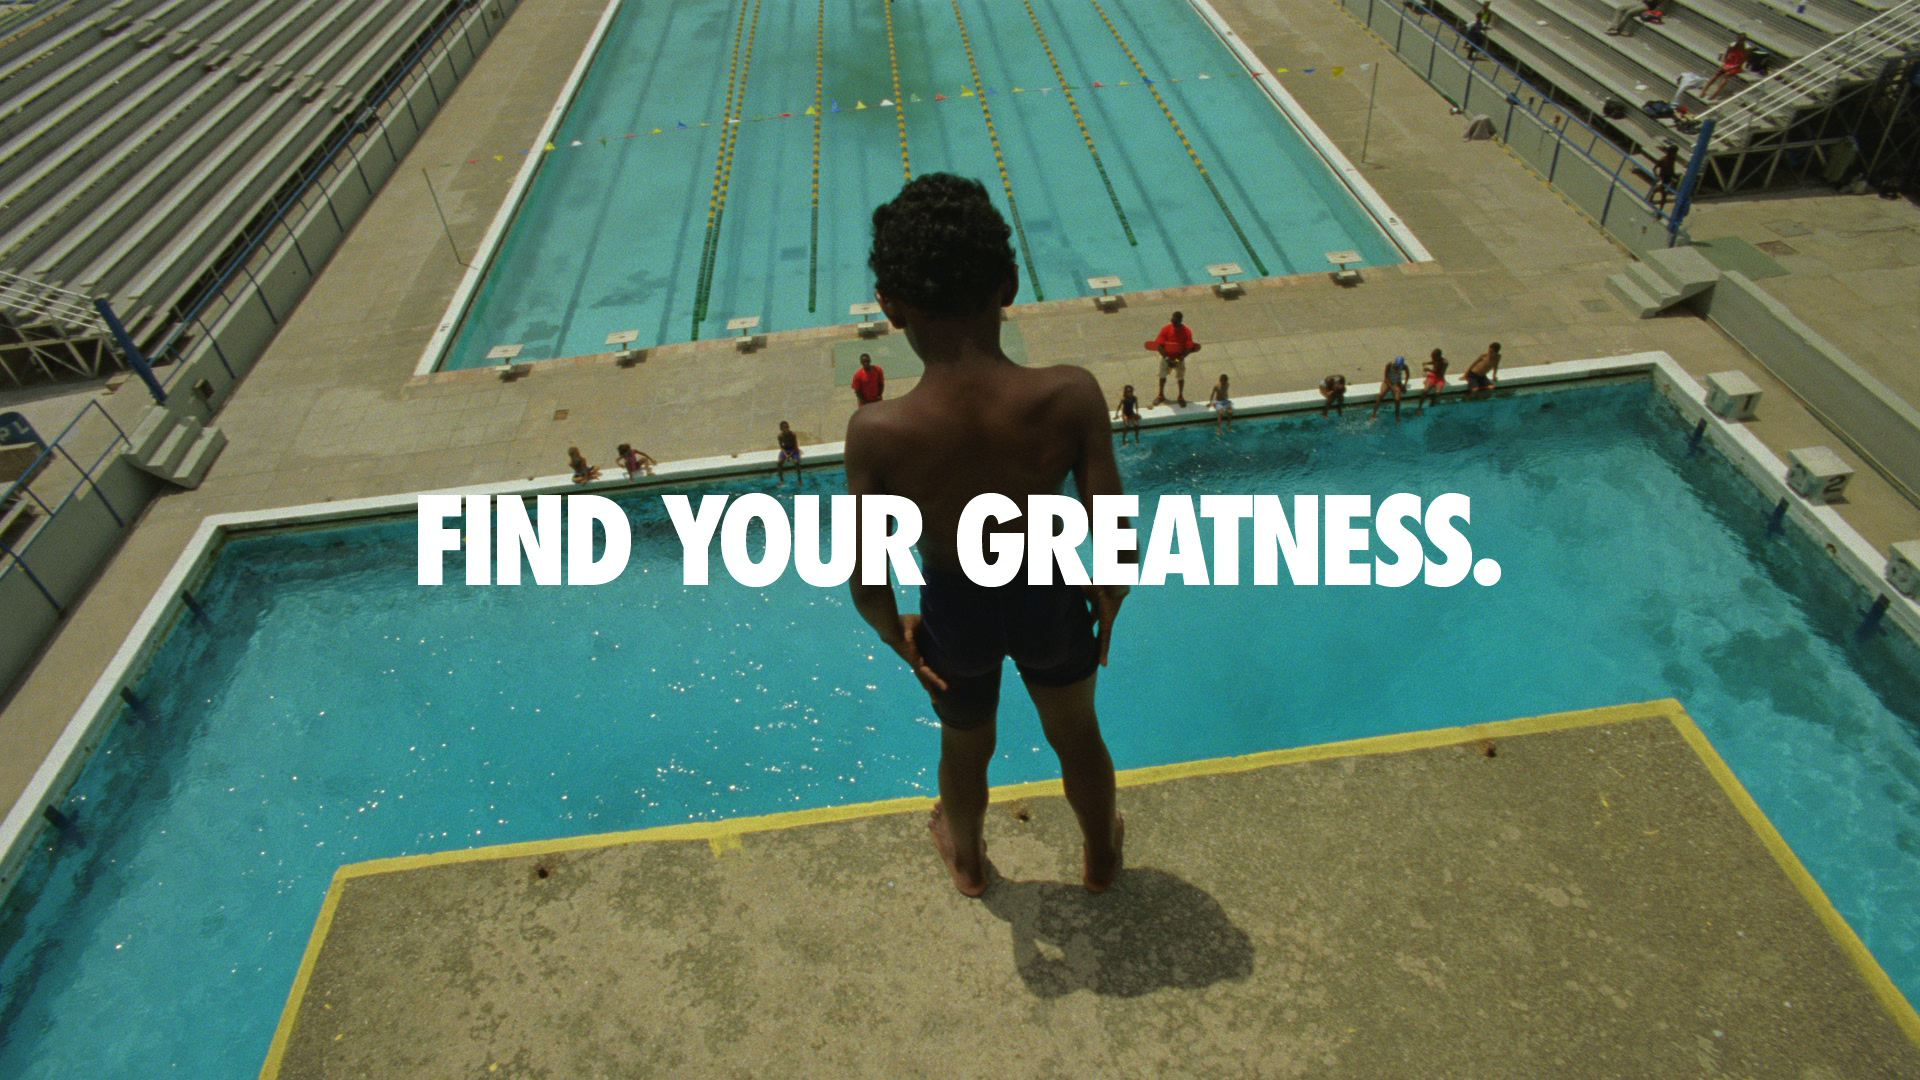 nike_find_your_greatness_diver.jpg (1920×1080)